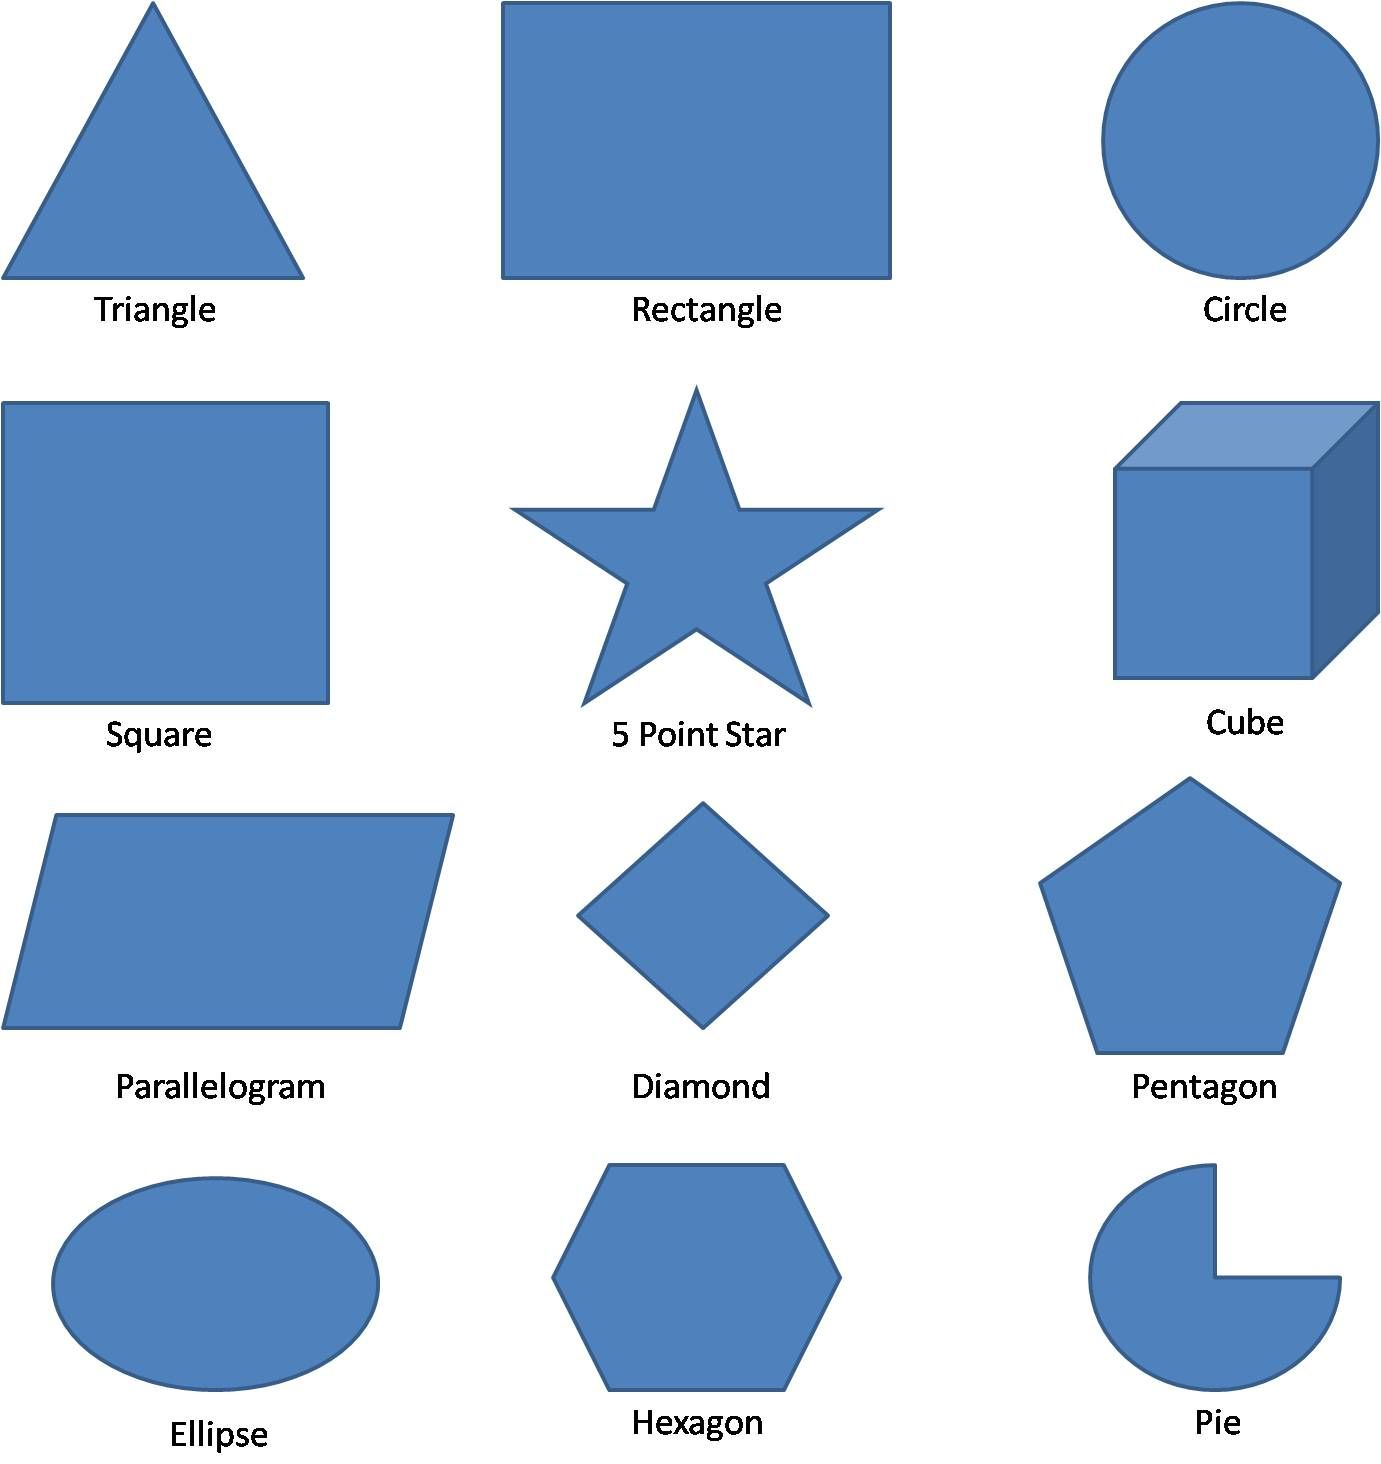 worksheet Shapes Names geometric shapes worksheets math pinterest shape 3d vocabulary part of body english names